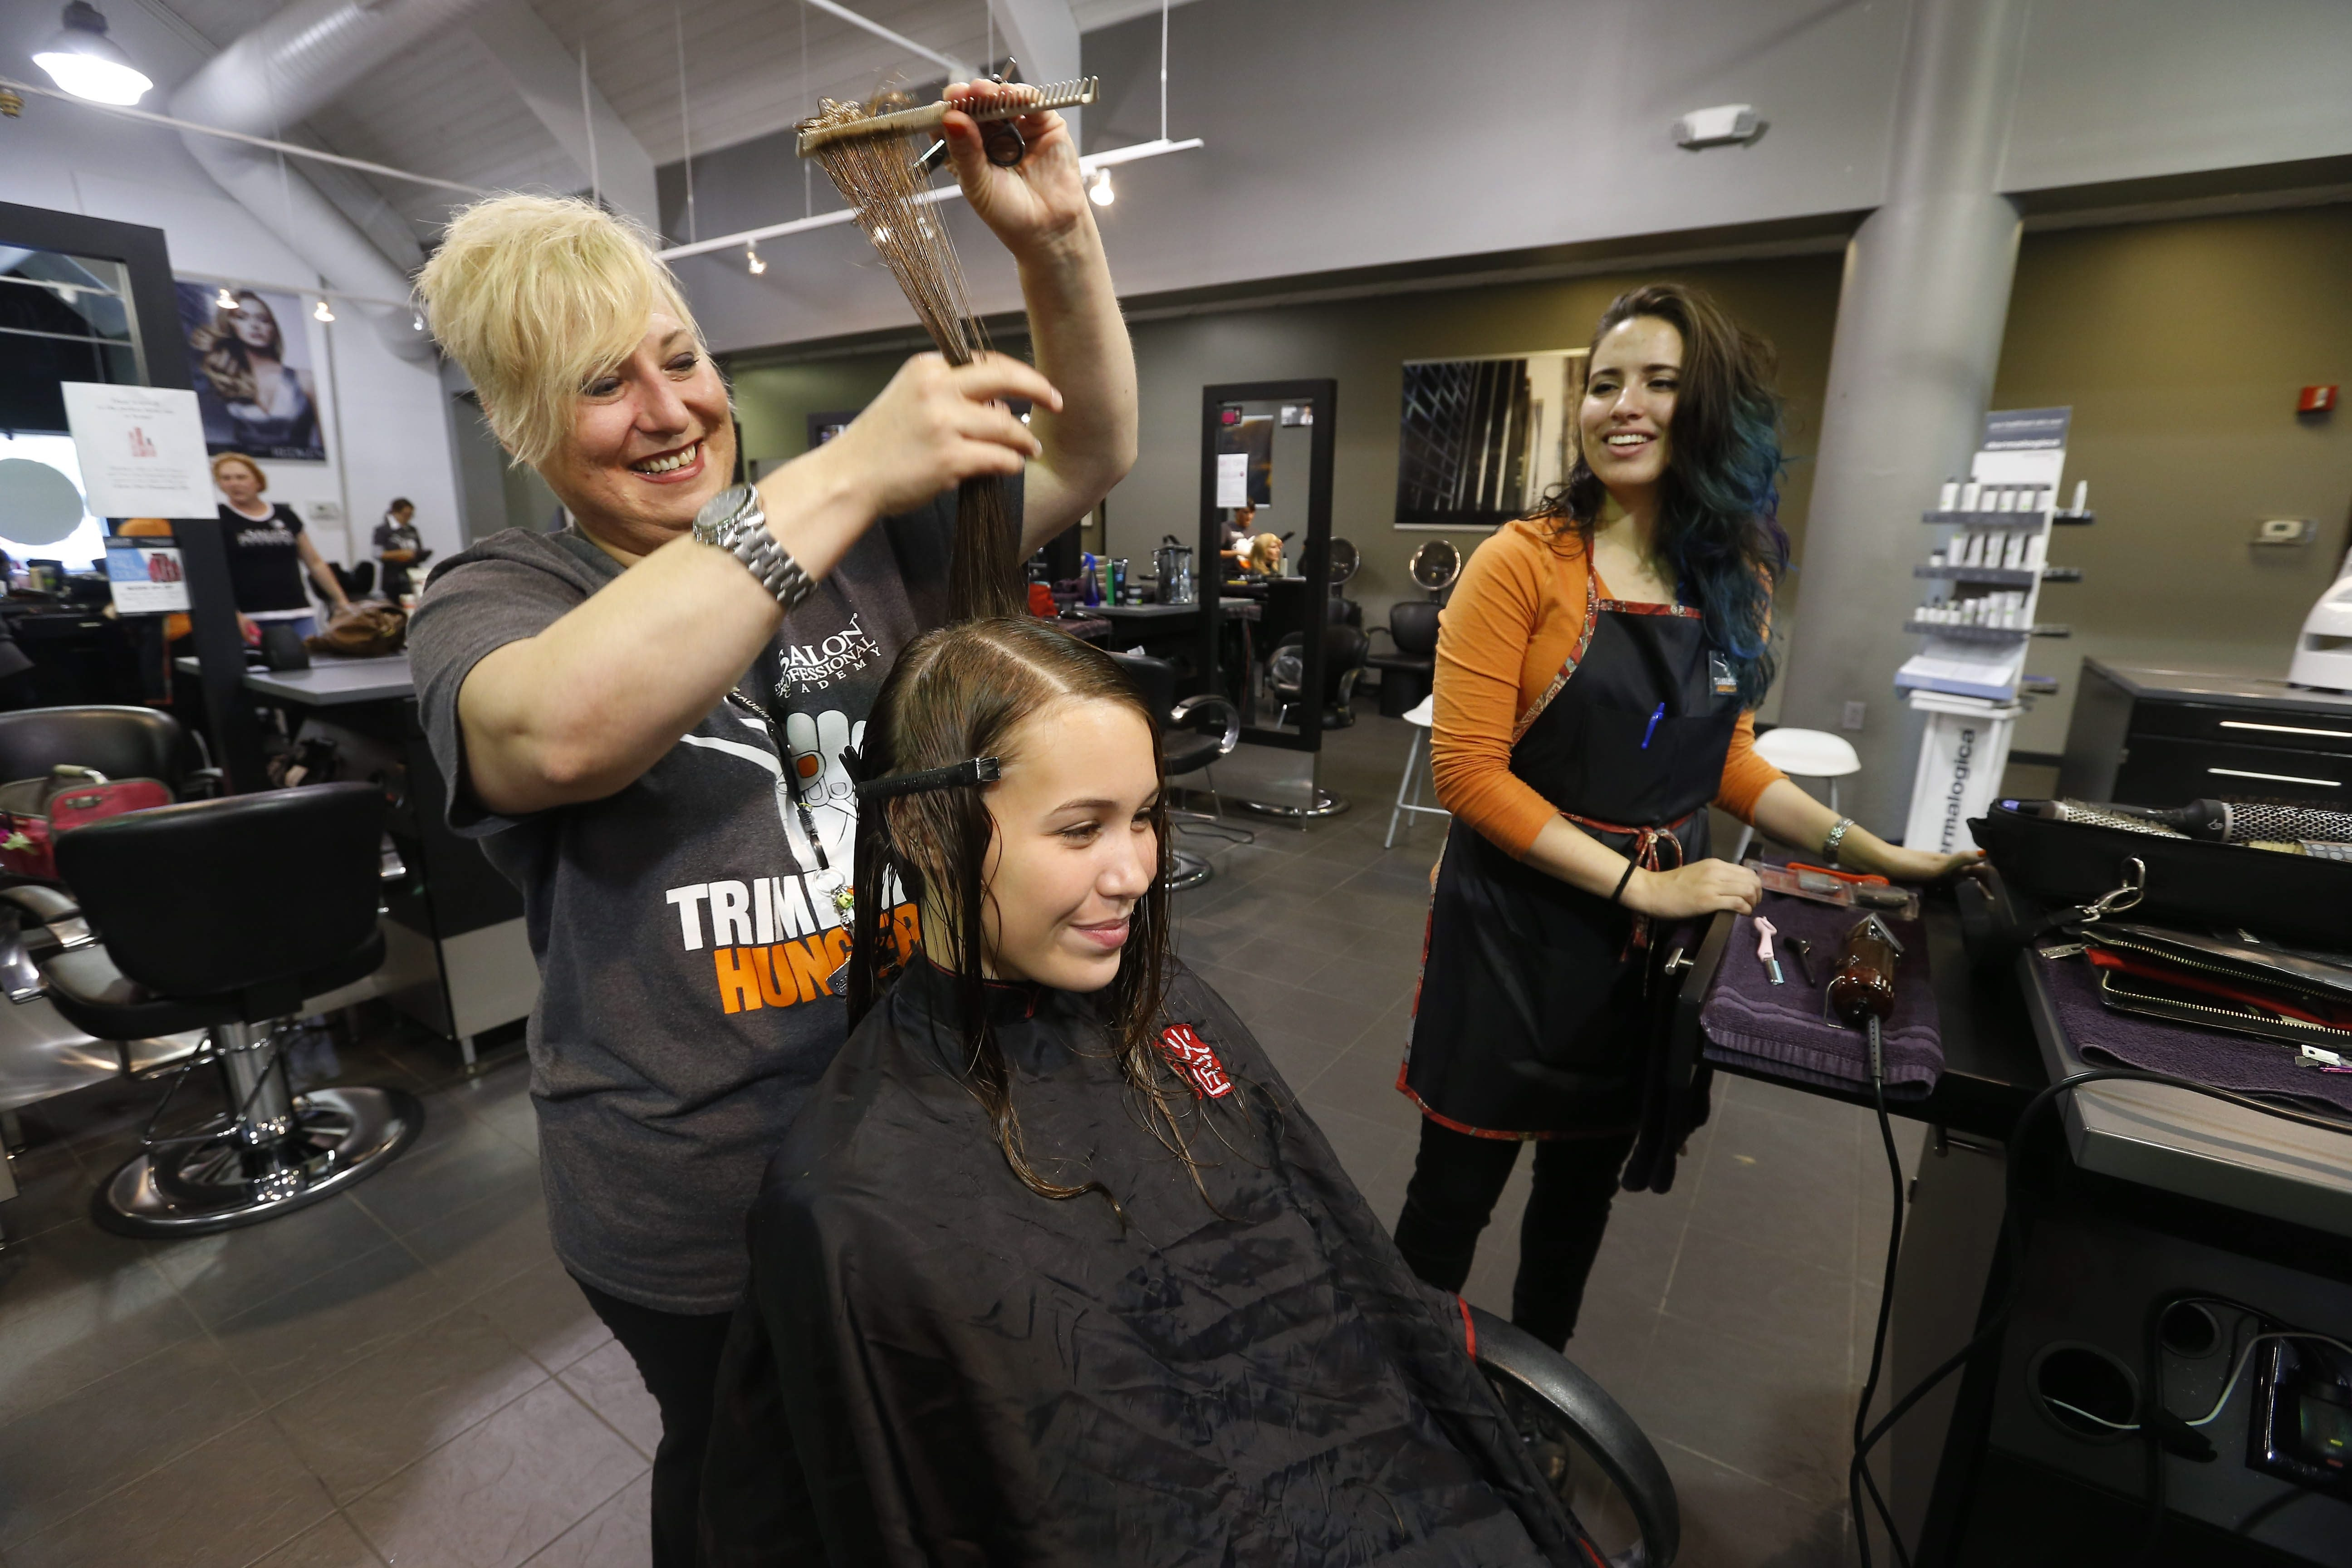 Natalie Morrow, center, has her hair cut by stylist Kate Meginley, left, and student Angelina Sanchez, right, for the Trim Hunger nationwide fundraiser at Salon Professional Academy in the Town of Tonawanda on Sunday.